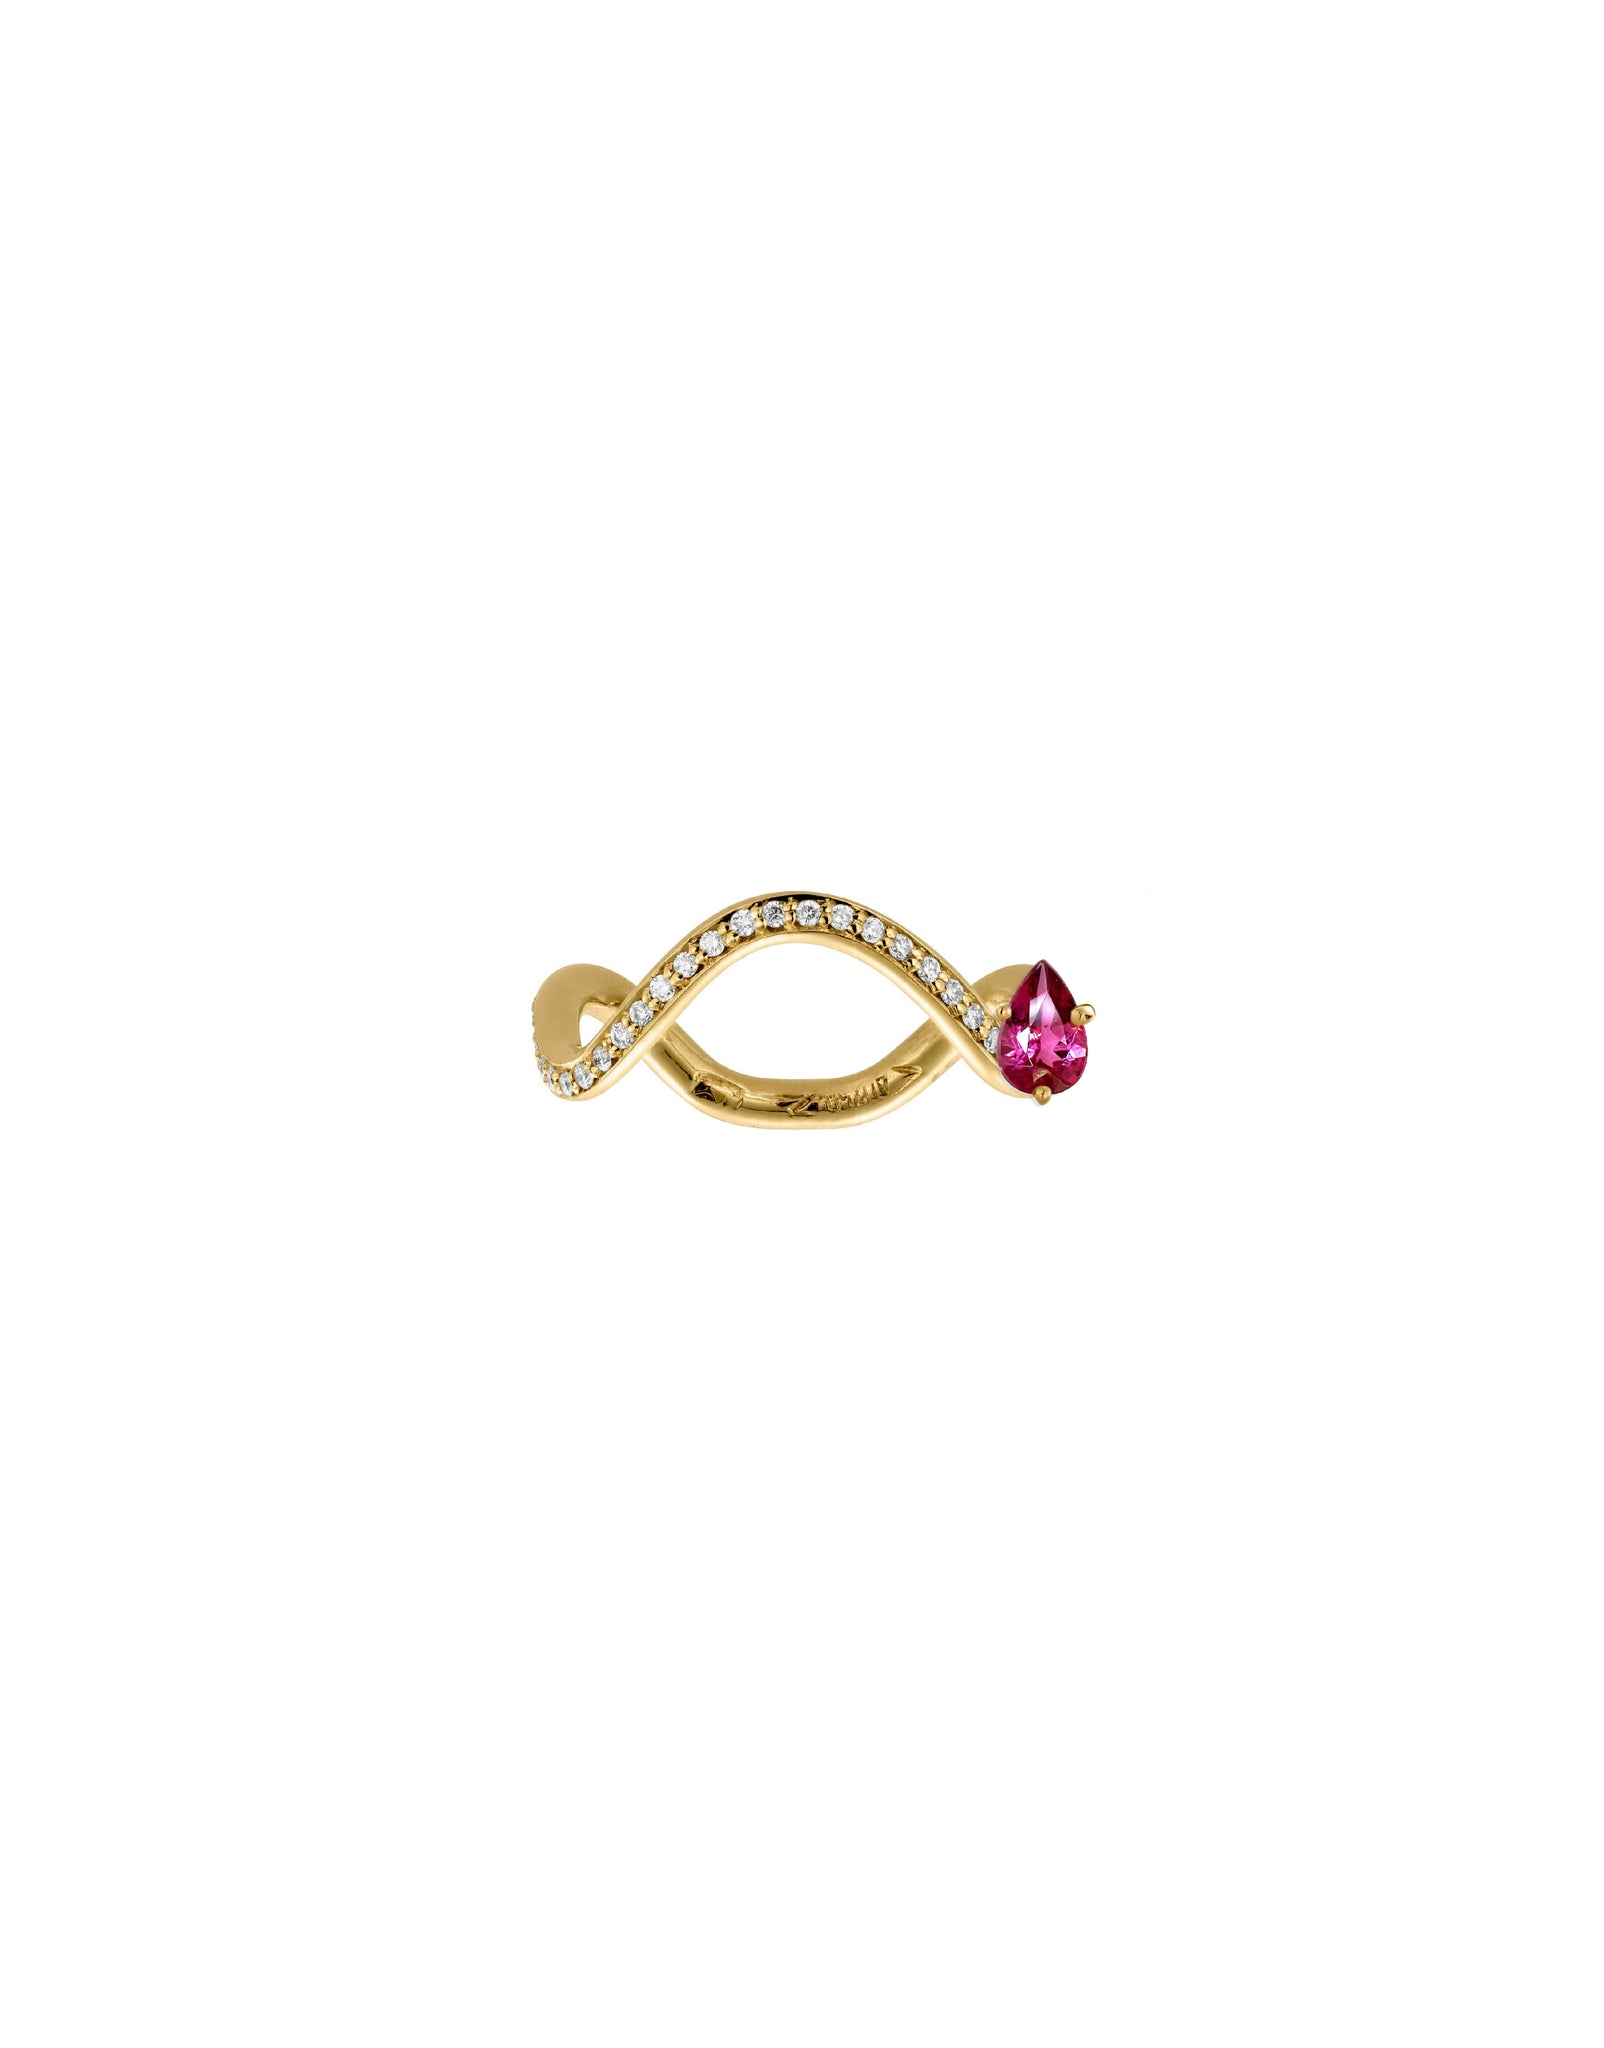 PETITE COMETE RING TOURMALINE AND DIAMOND